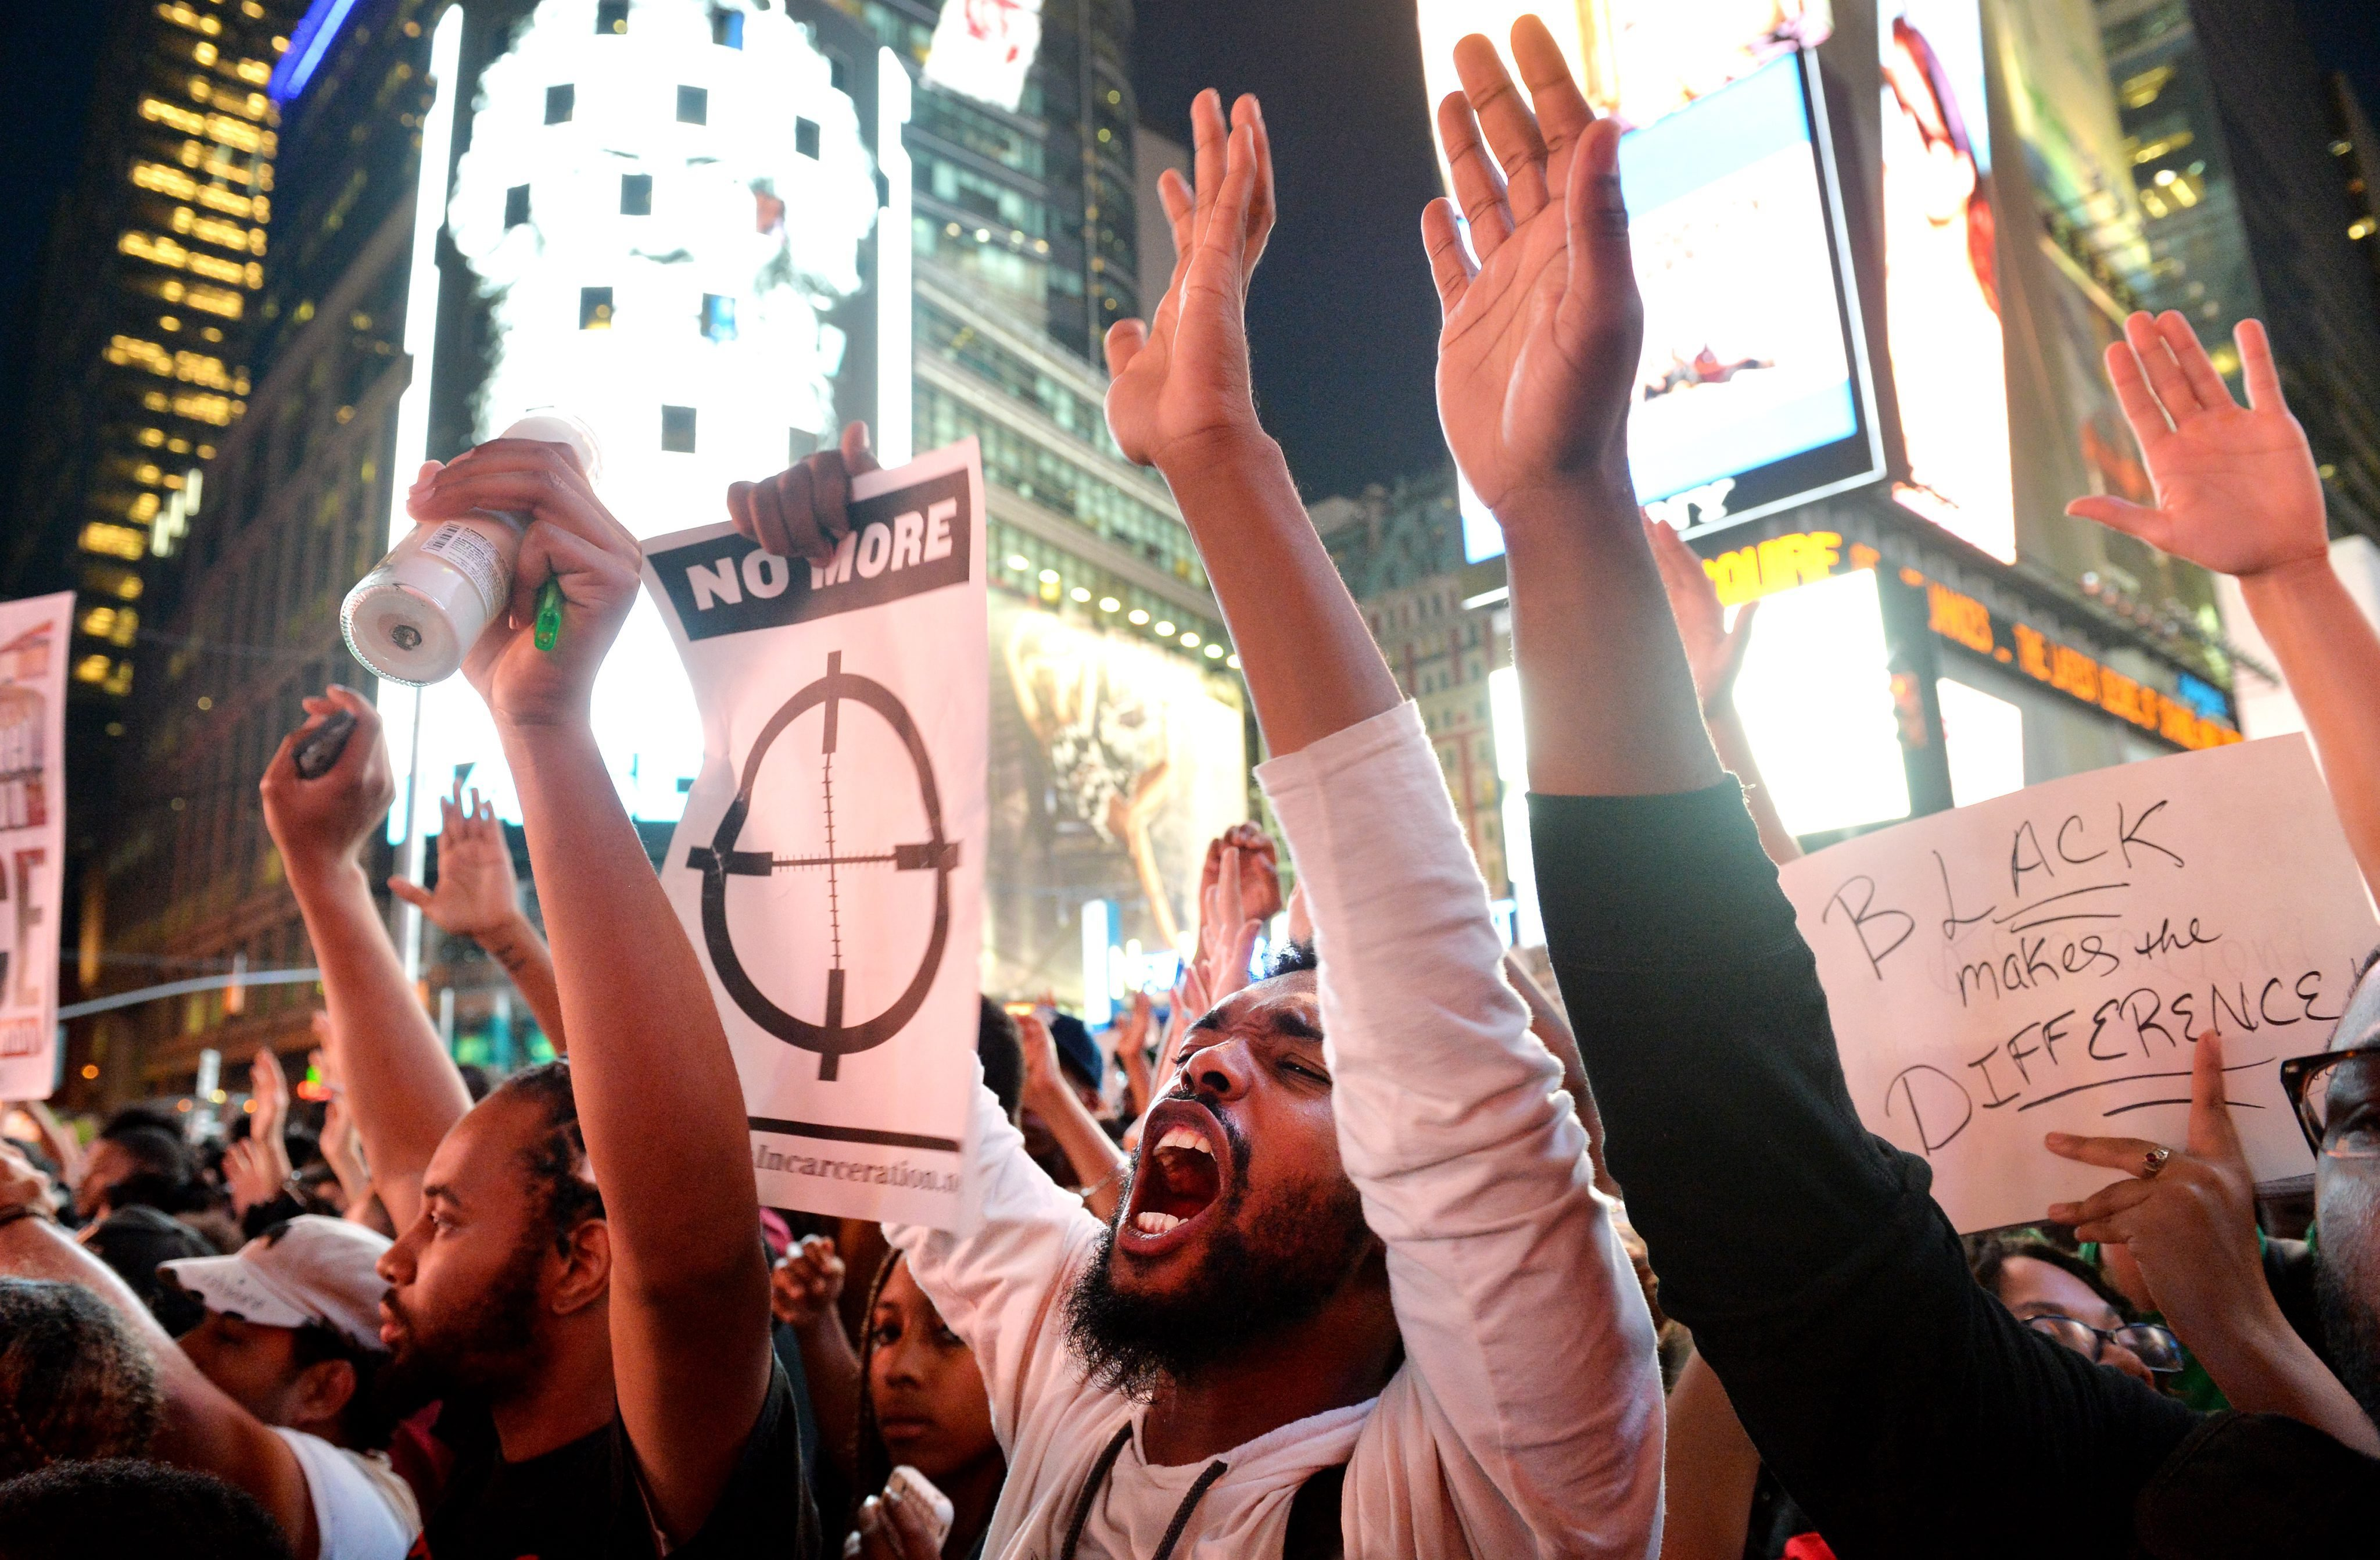 People chant during a march in Times Square on Aug. 14, 2014 that sprung from a National Day of Silence in Remembrance of Mike Brown, an unarmed young man who was killed on Aug. 9, 2014 in Ferguson, Missouri.